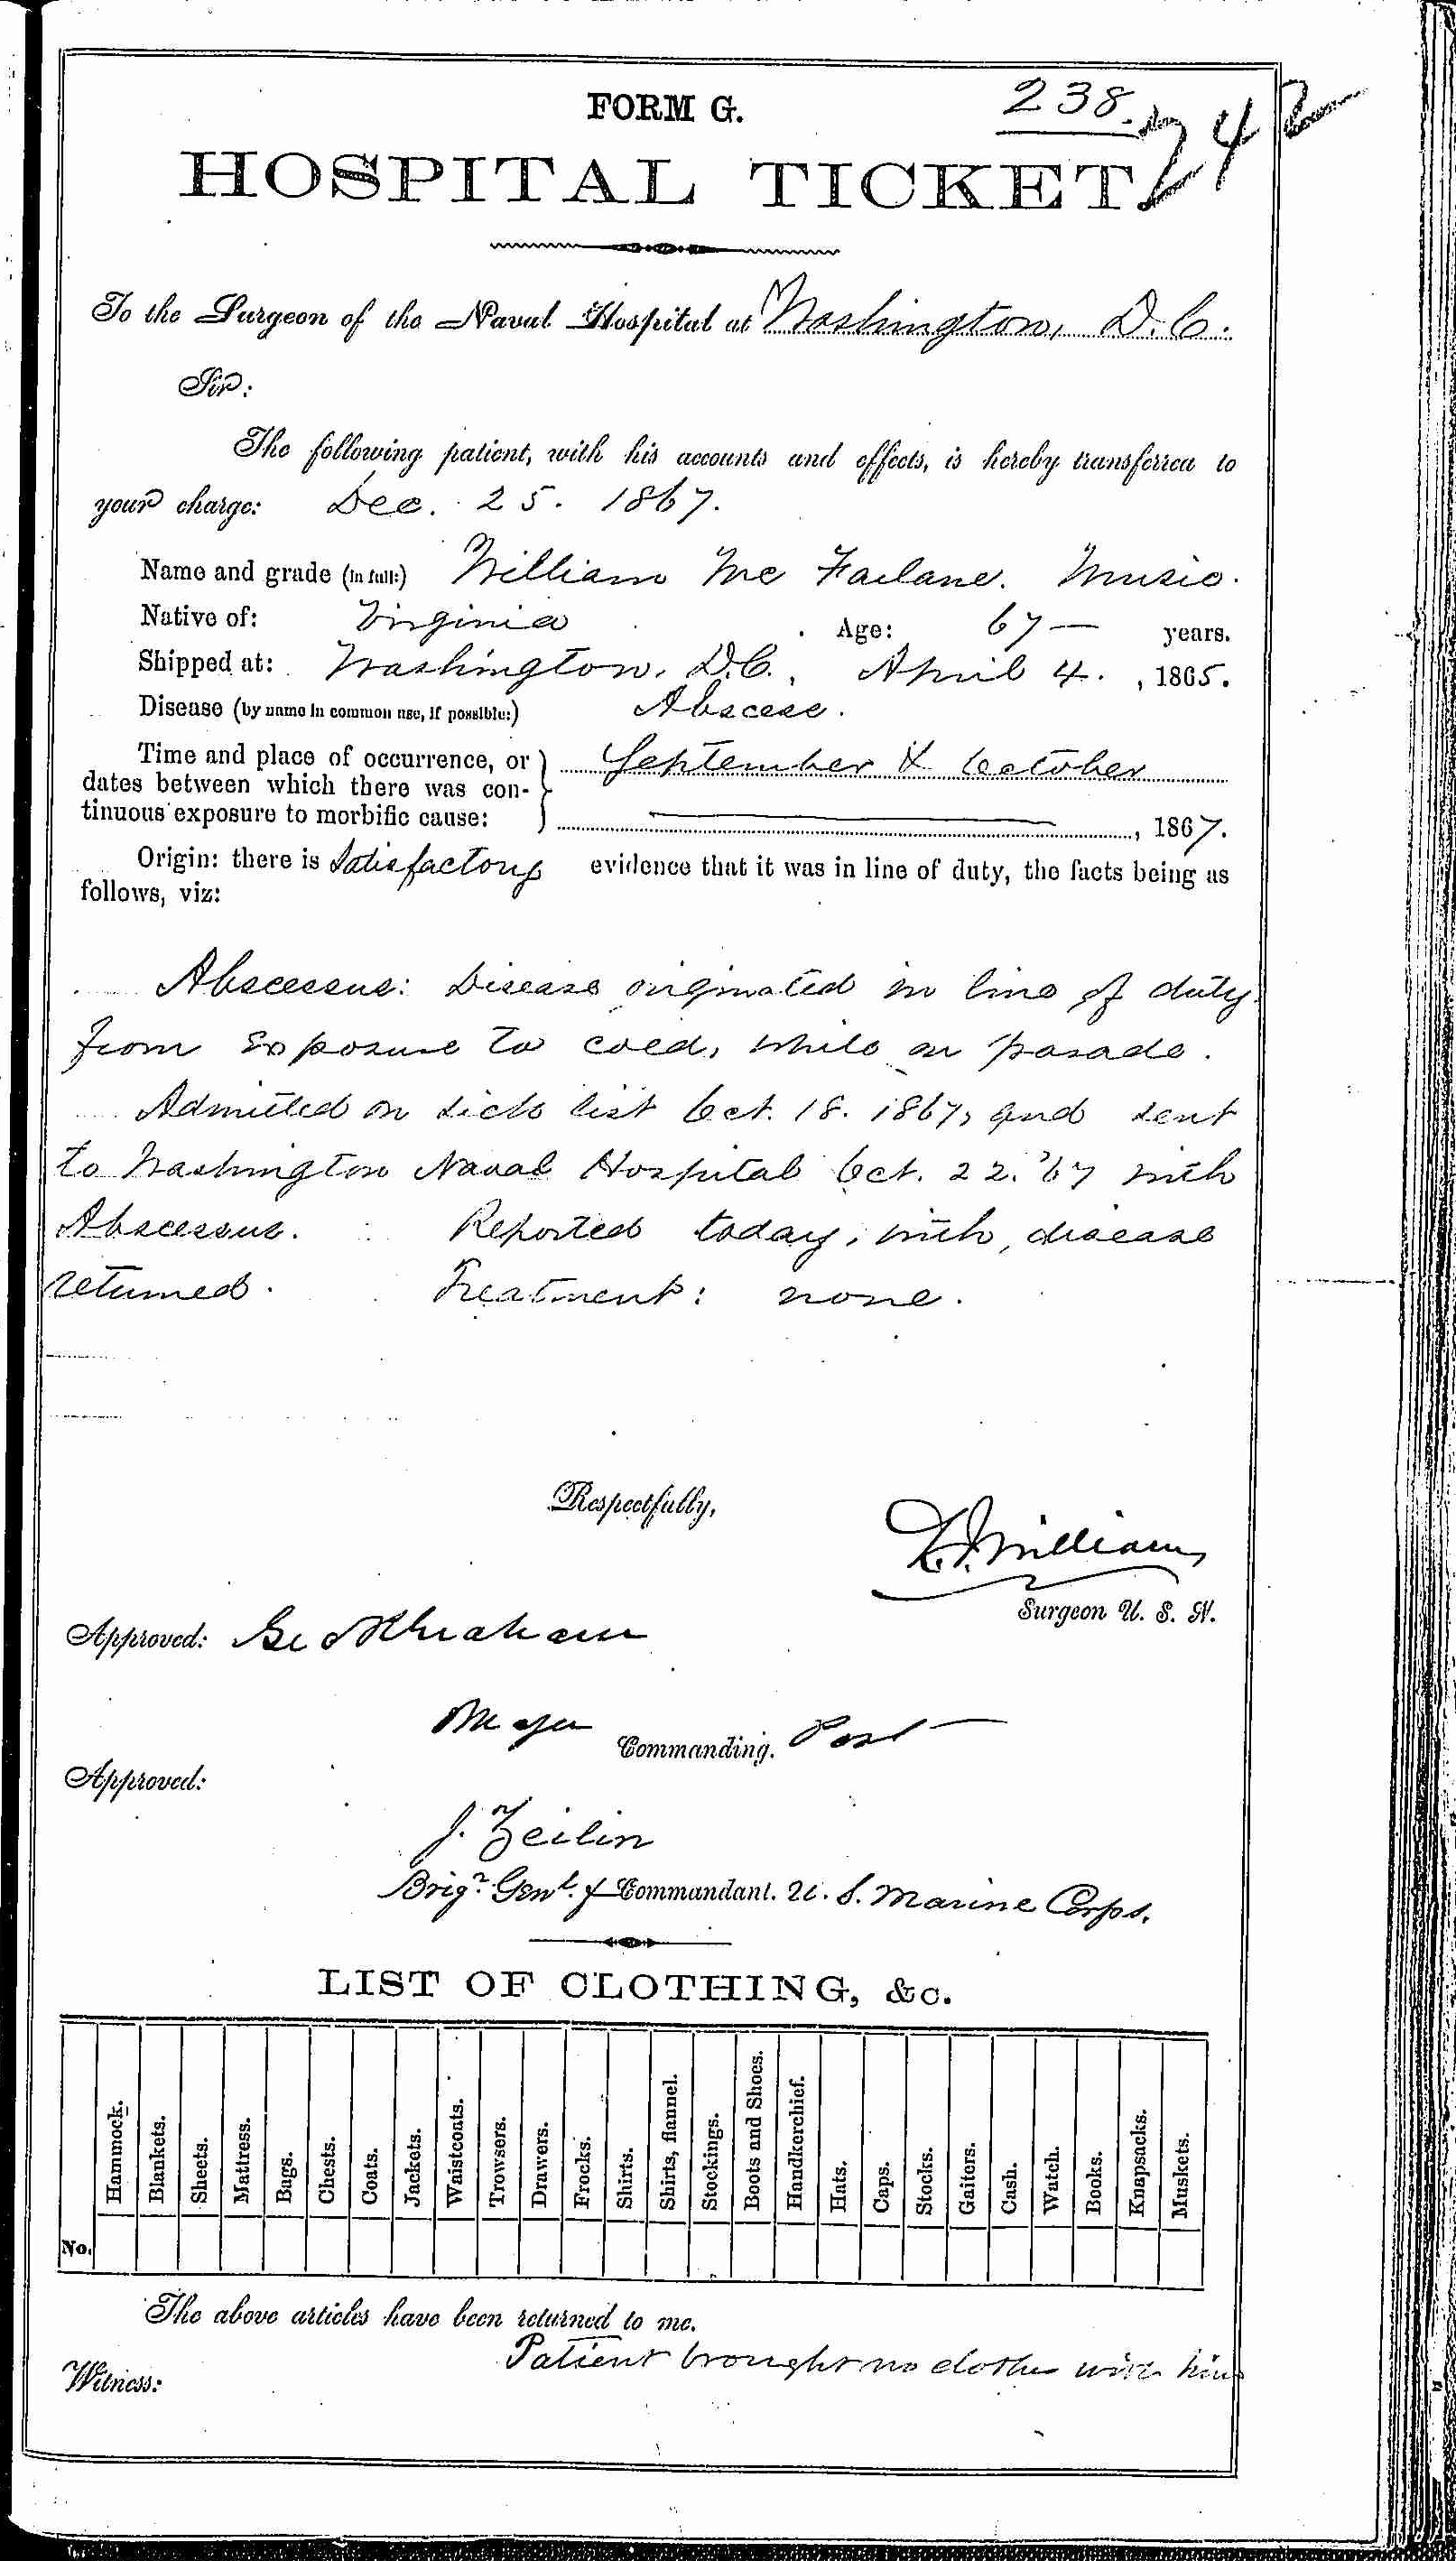 Entry for William McFarlane (second admission page 1 of 2) in the log Hospital Tickets and Case Papers - Naval Hospital - Washington, D.C. - 1866-68